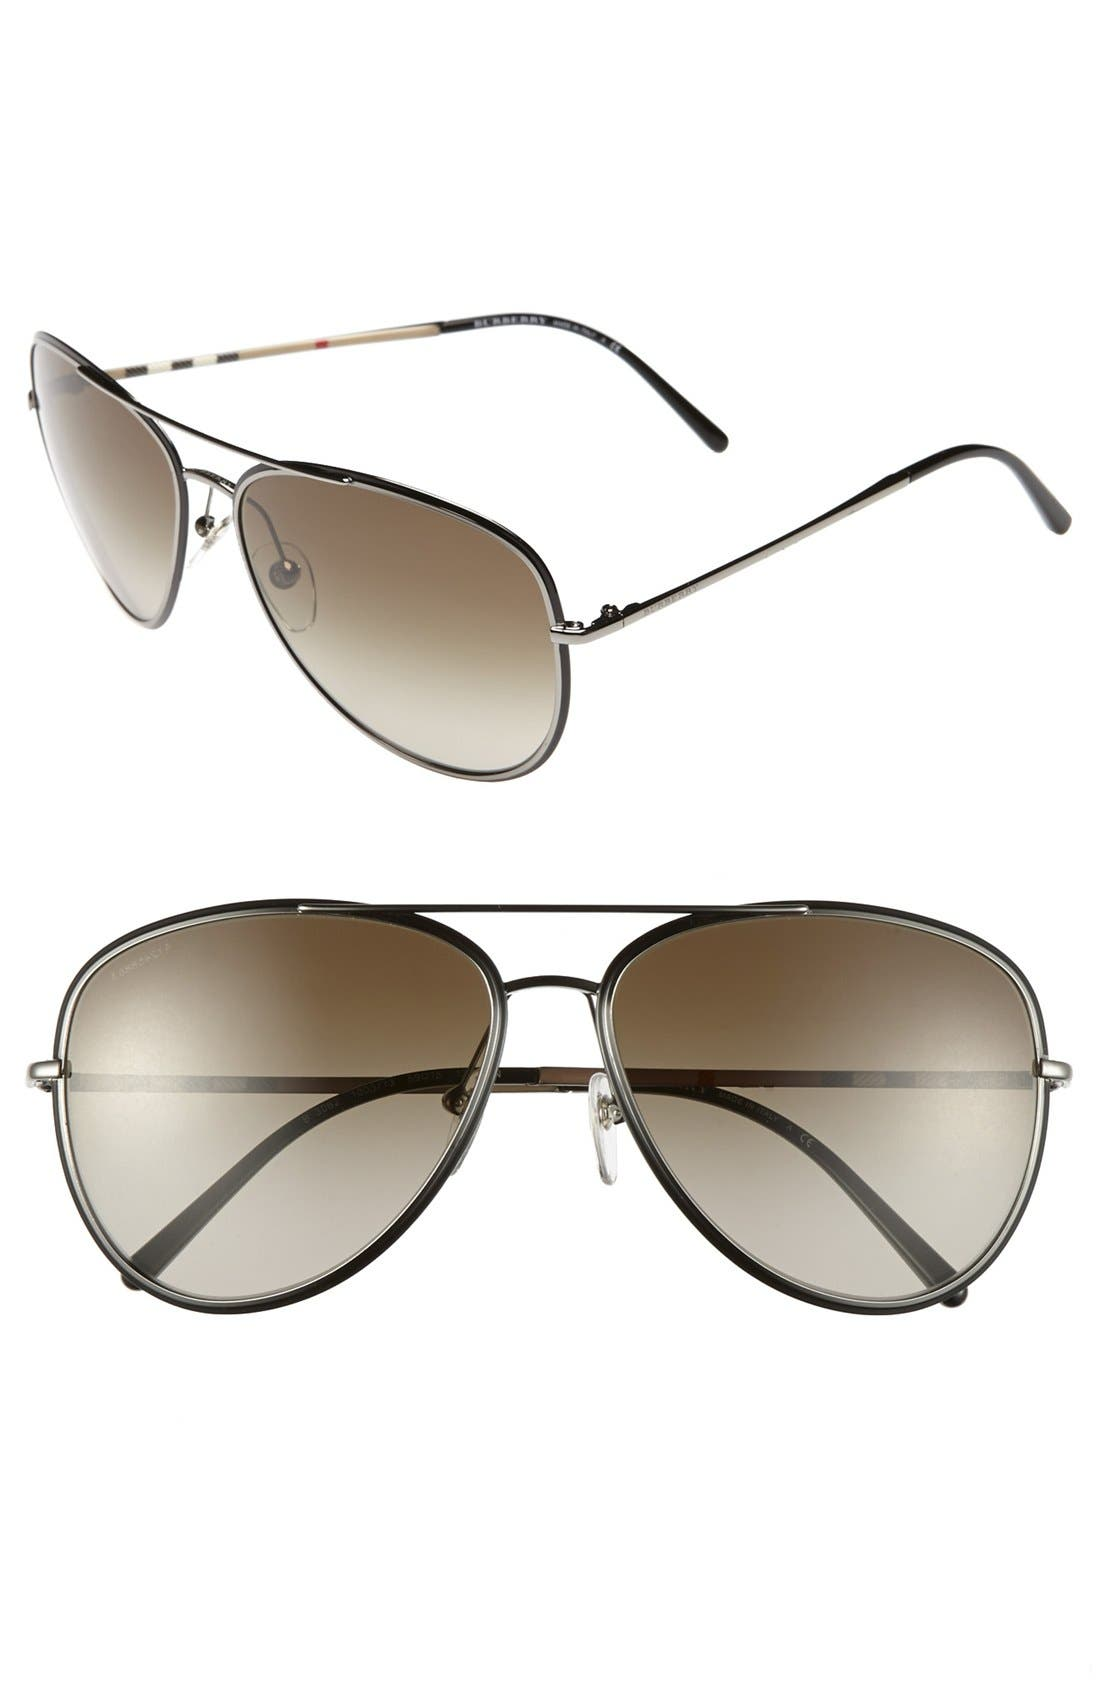 Alternate Image 1 Selected - Burberry 59mm Aviator Sunglasses